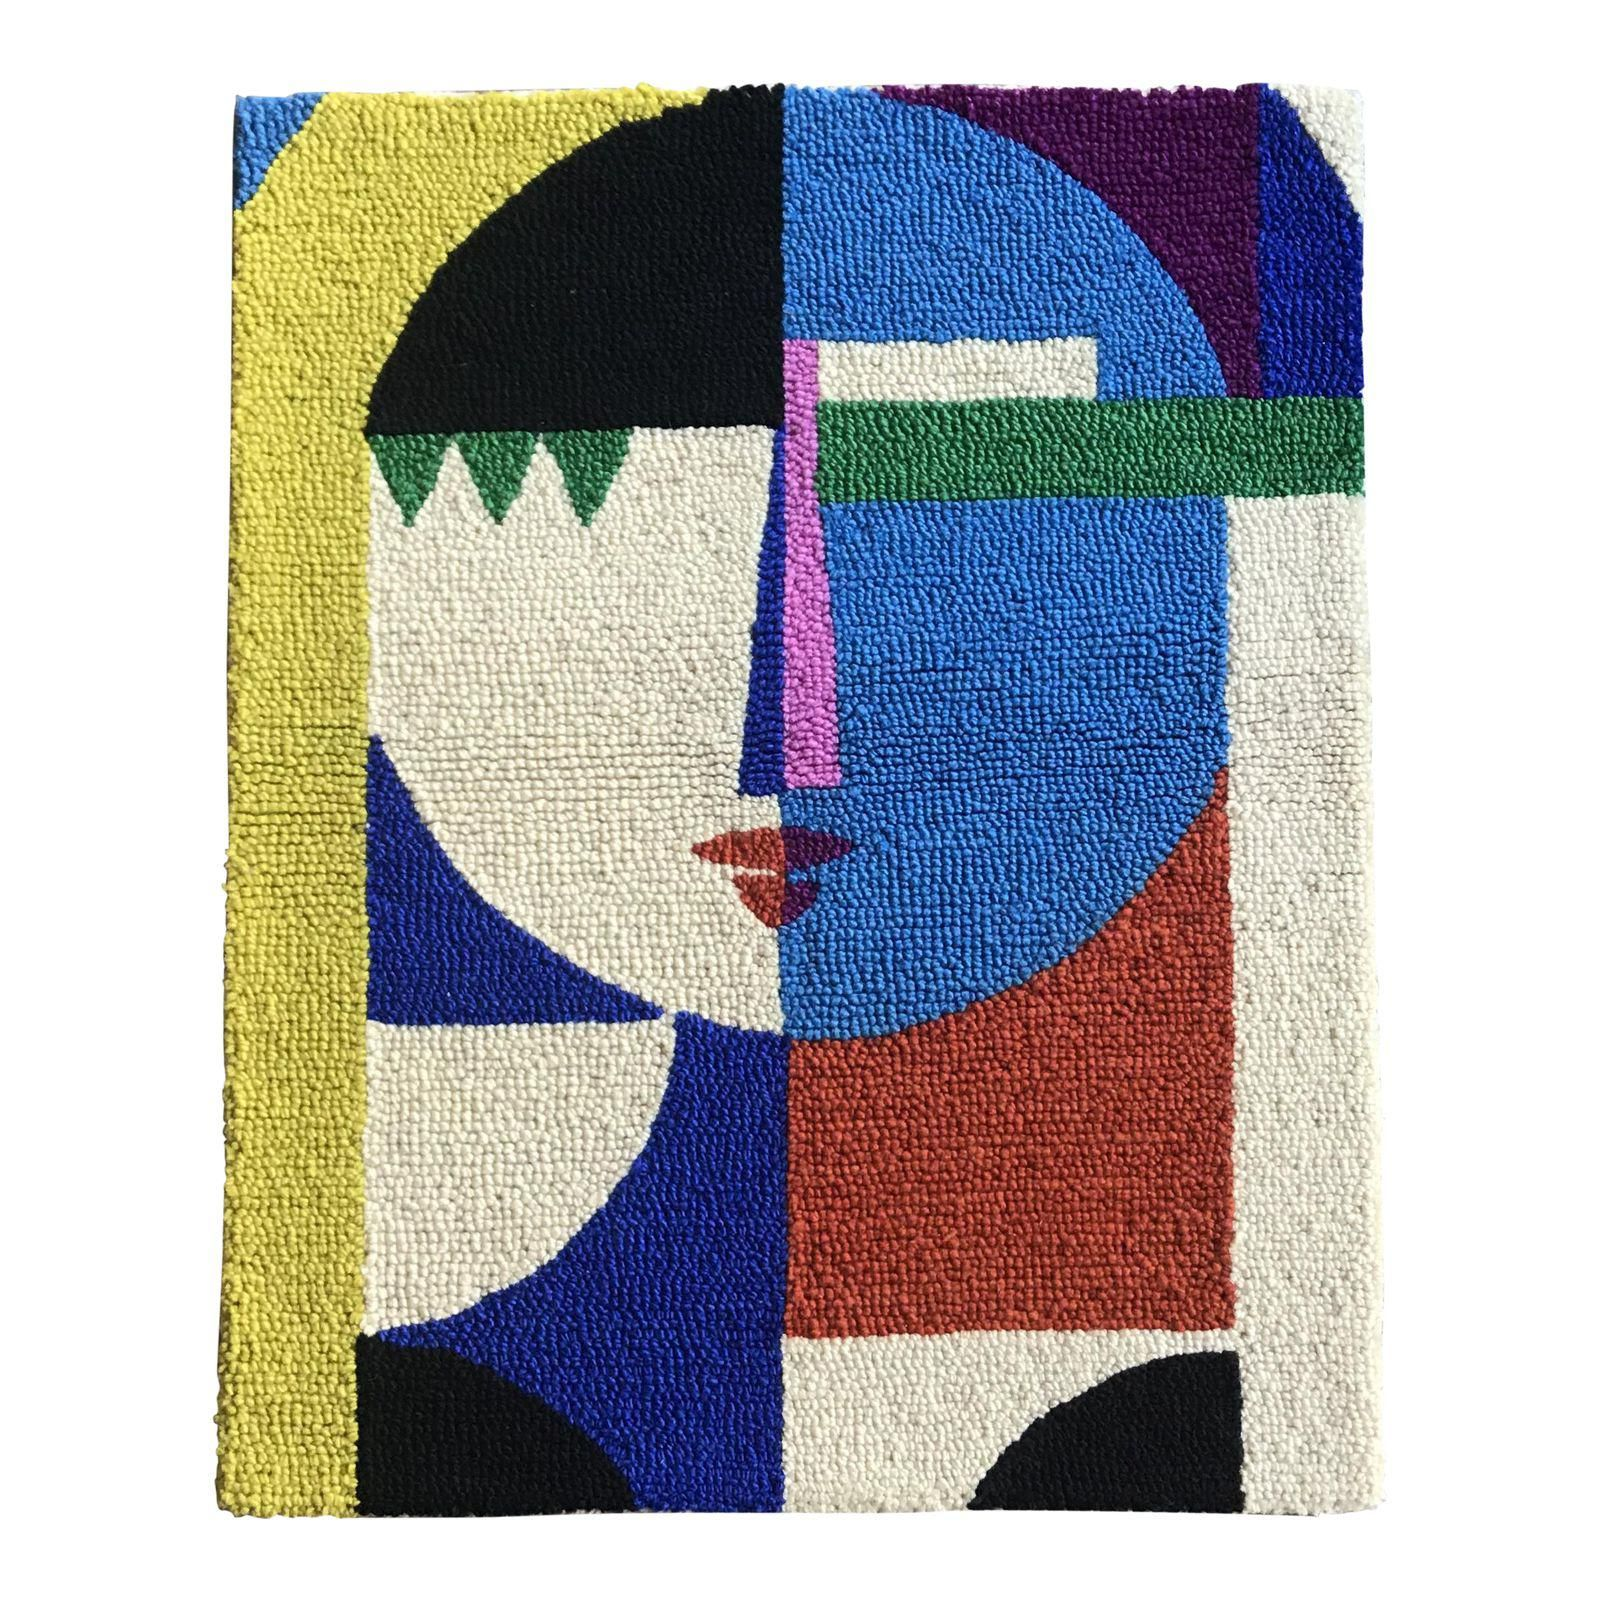 Female Abstract Color Block Wall Textile | Bill and Steve ...